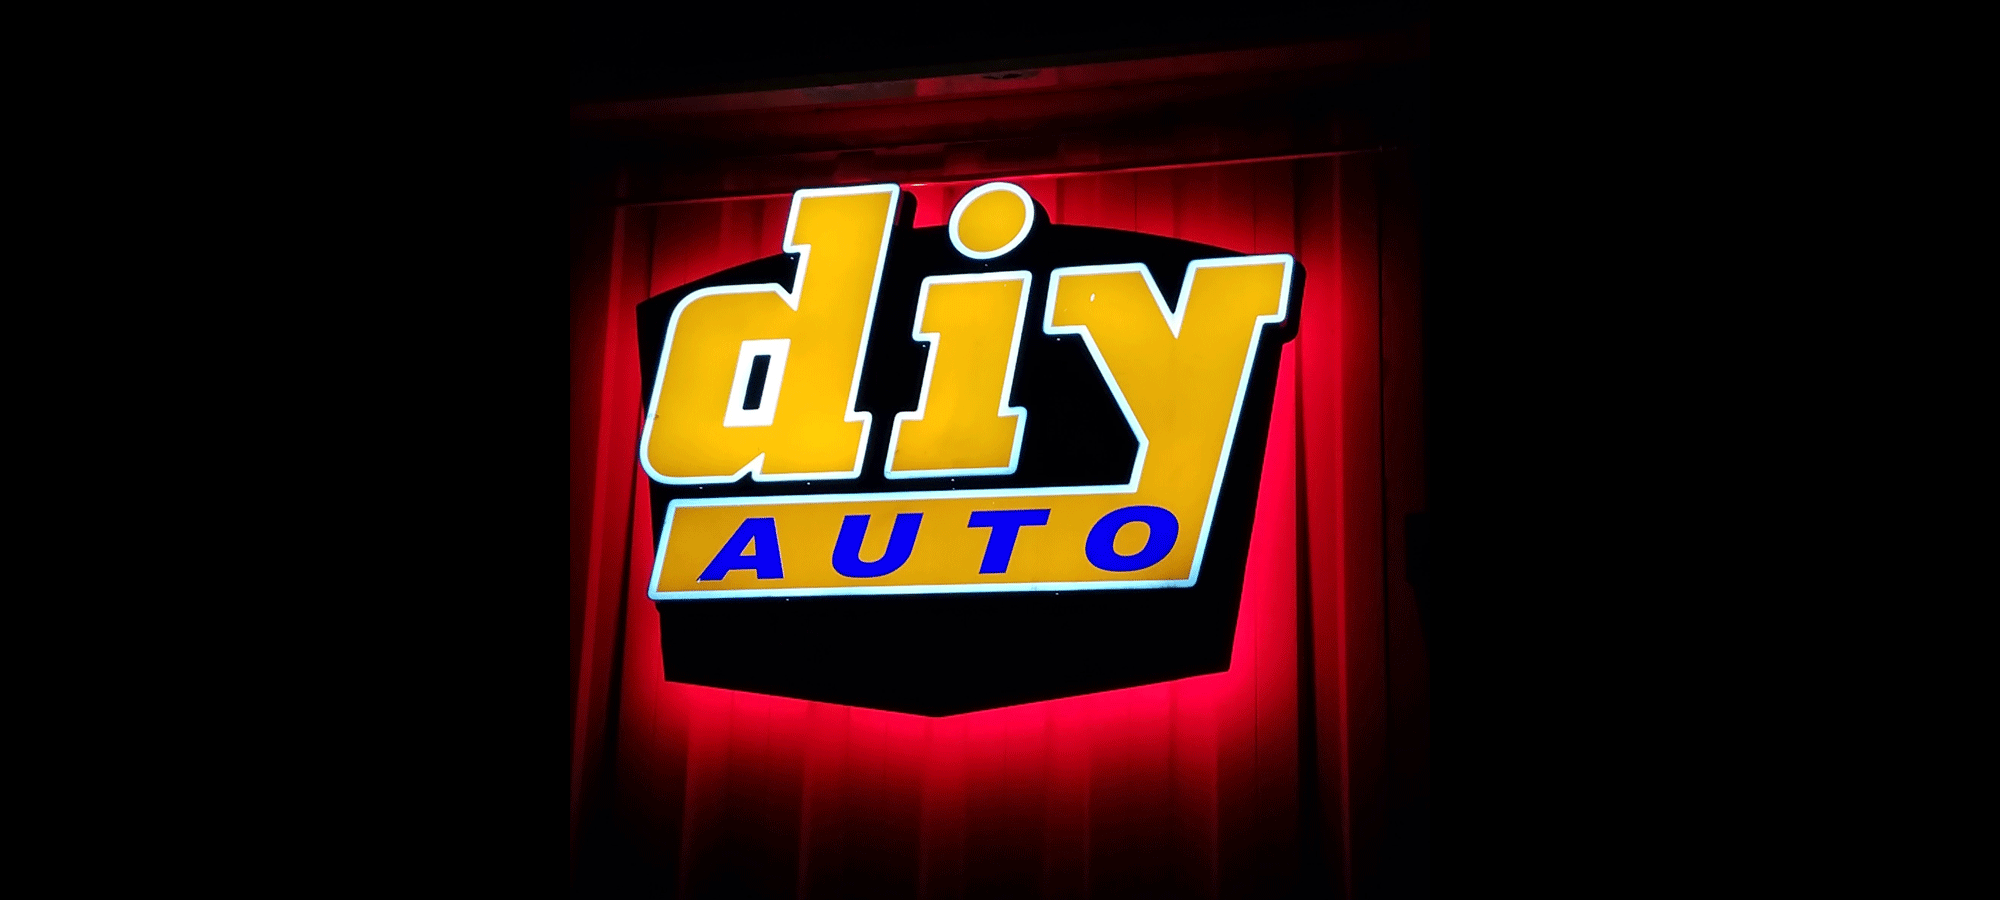 Diy auto repair shops equipped self service garage bays open weekends solutioingenieria Images